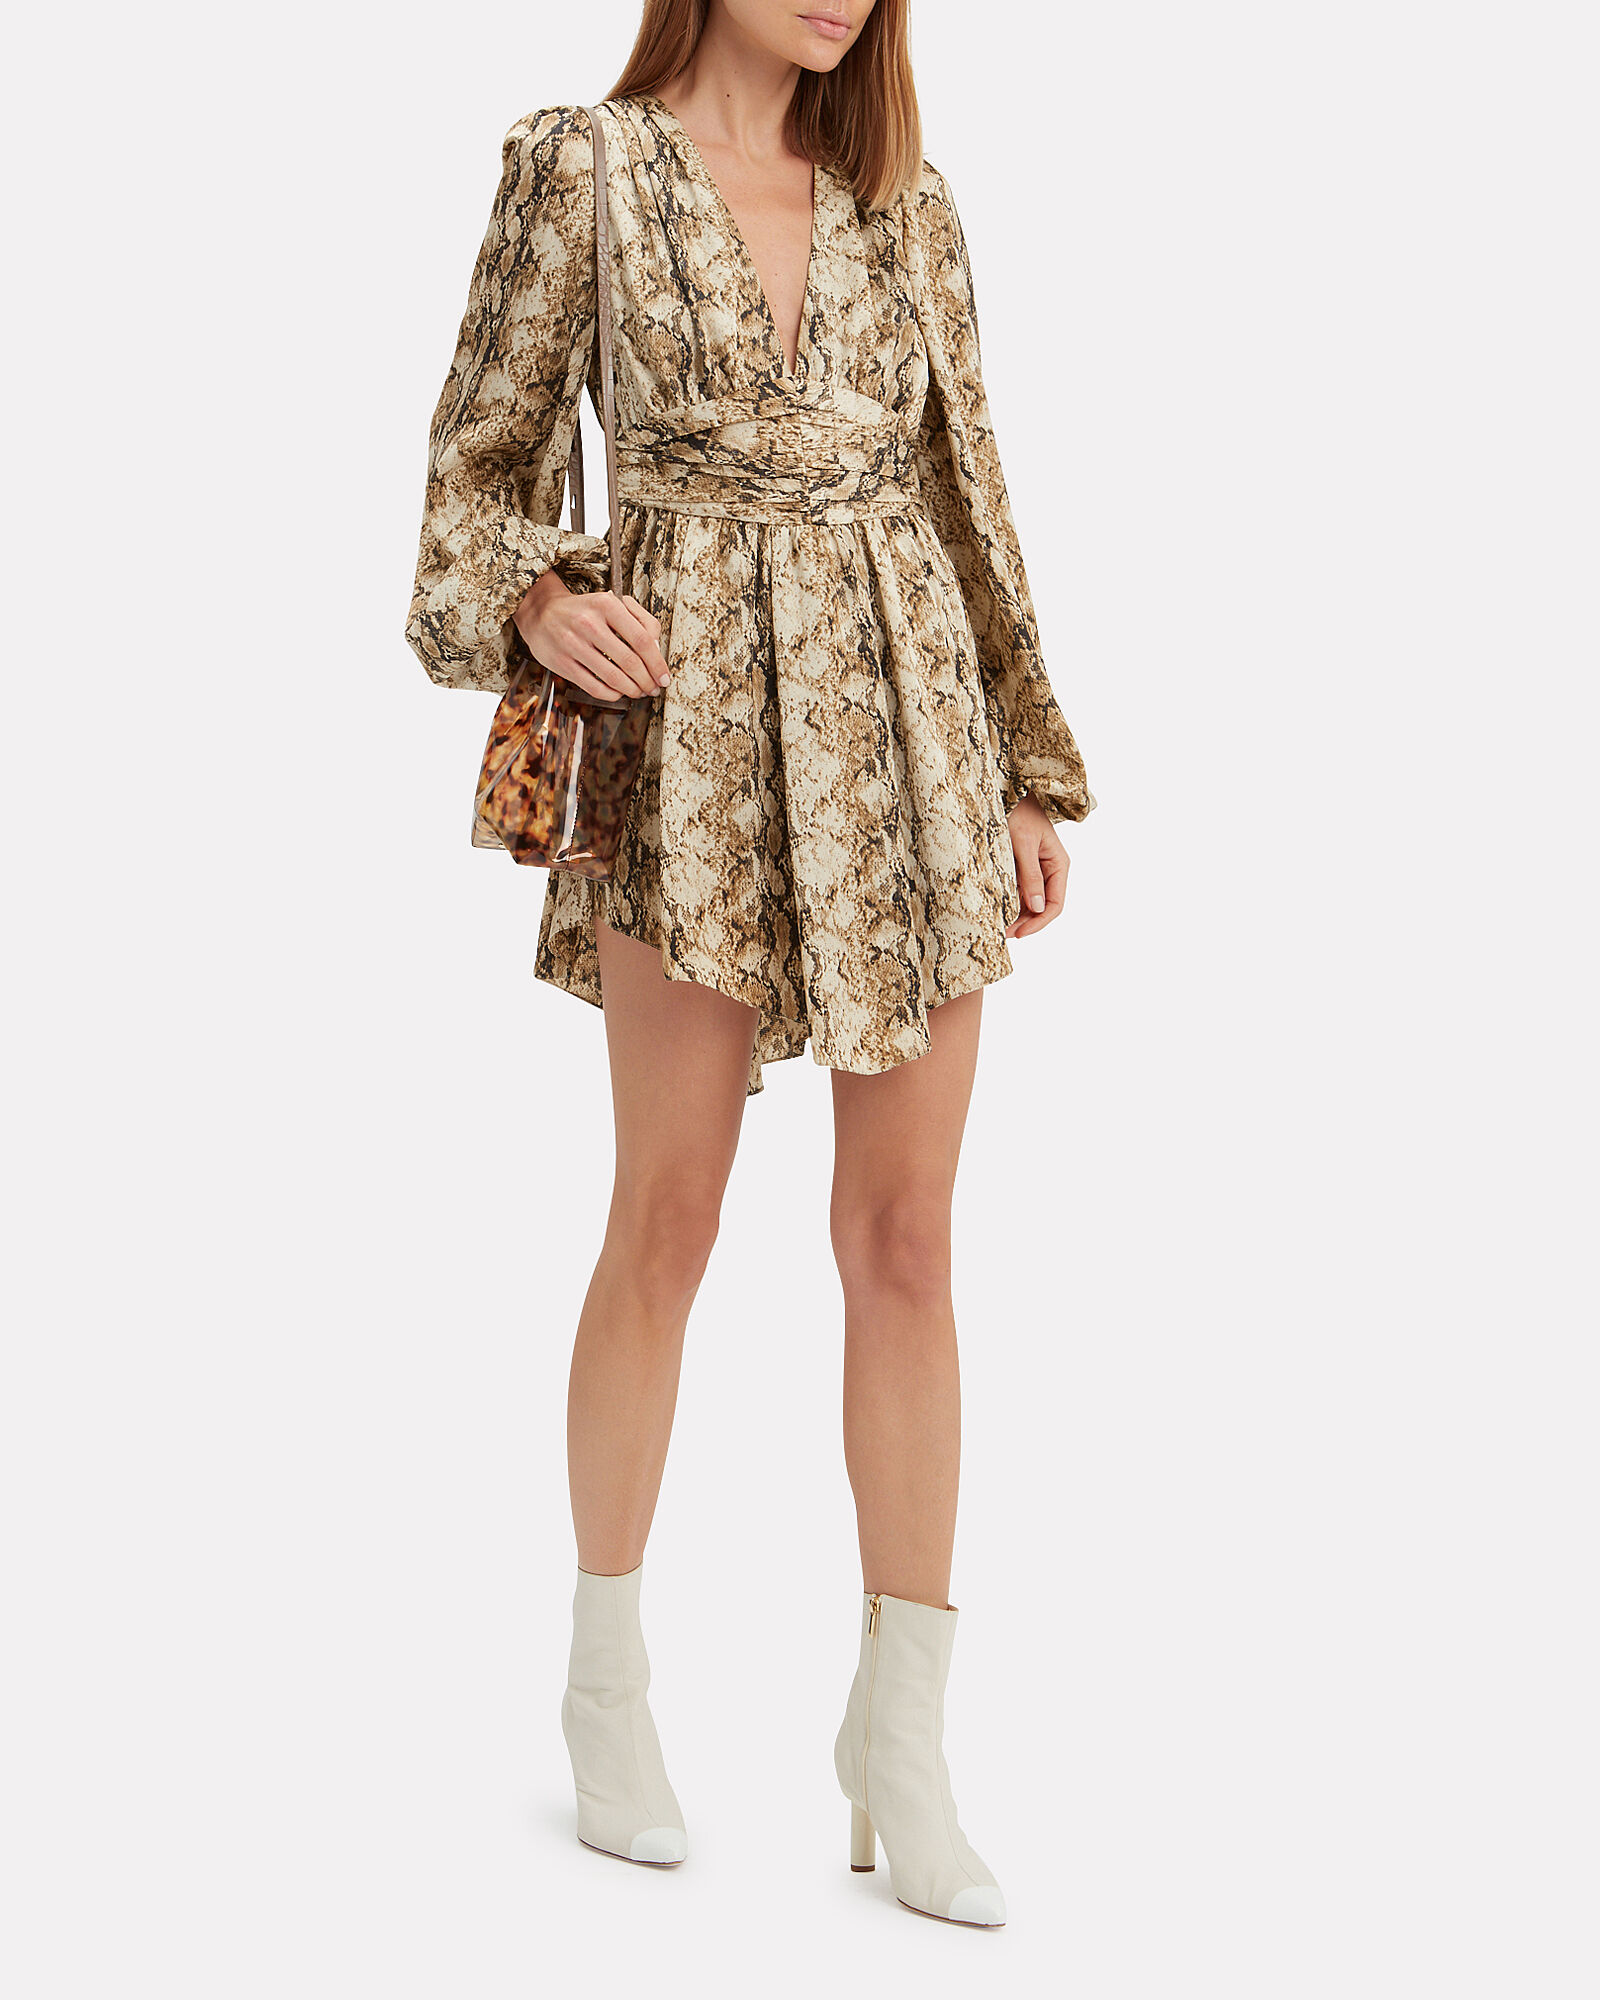 Orzora Snake Print Mini Dress, MULTI, hi-res